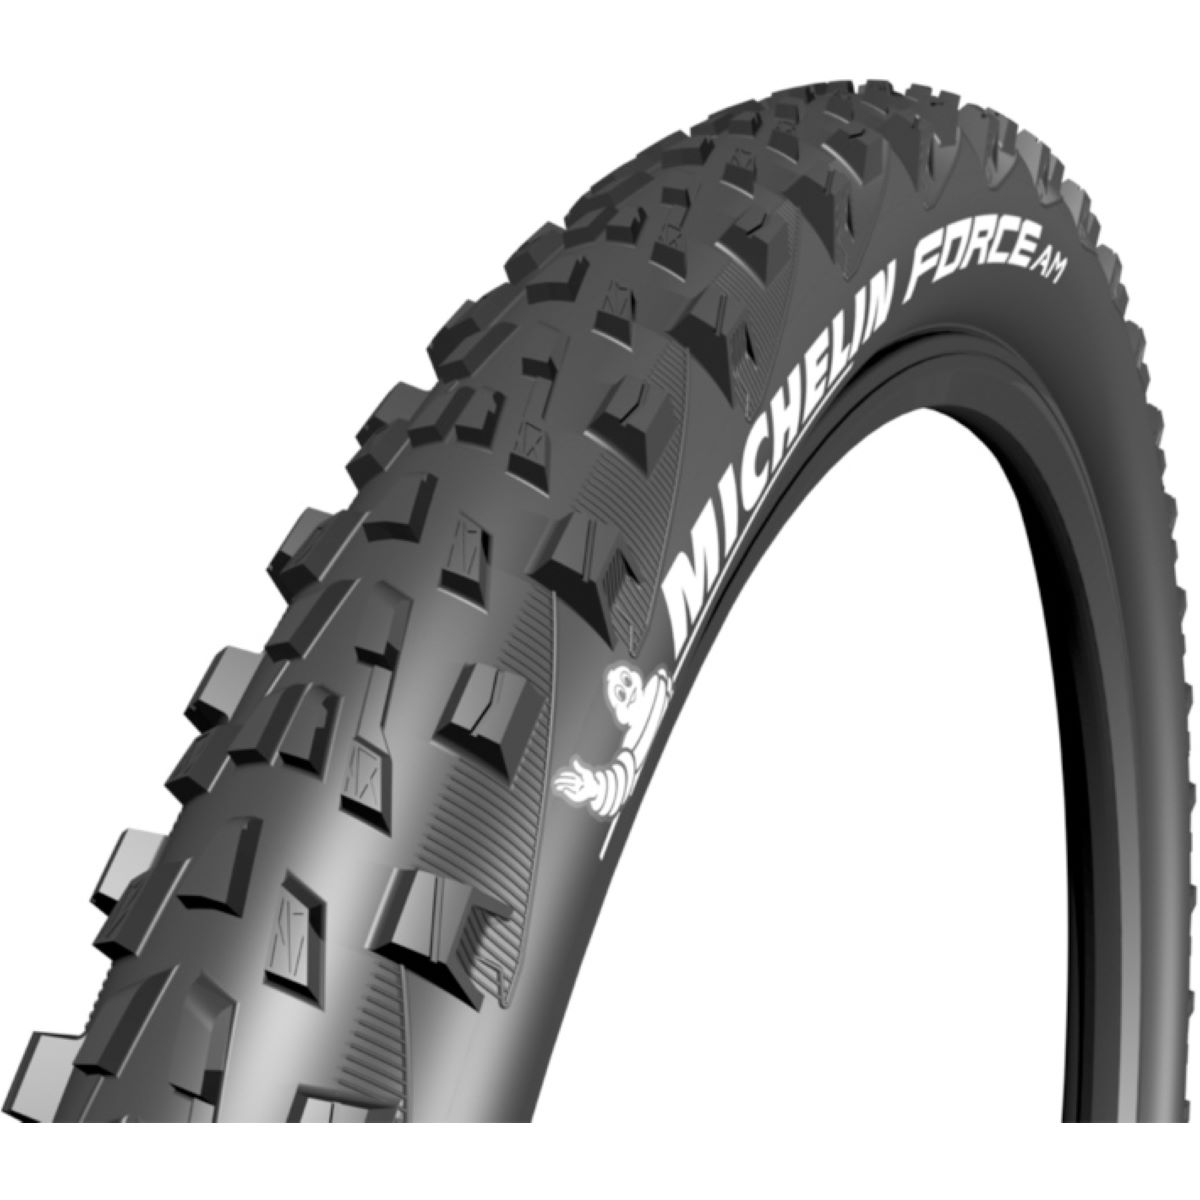 Pneu VTT Michelin Force AM Competition - 2.35' 29' Noir Pneus